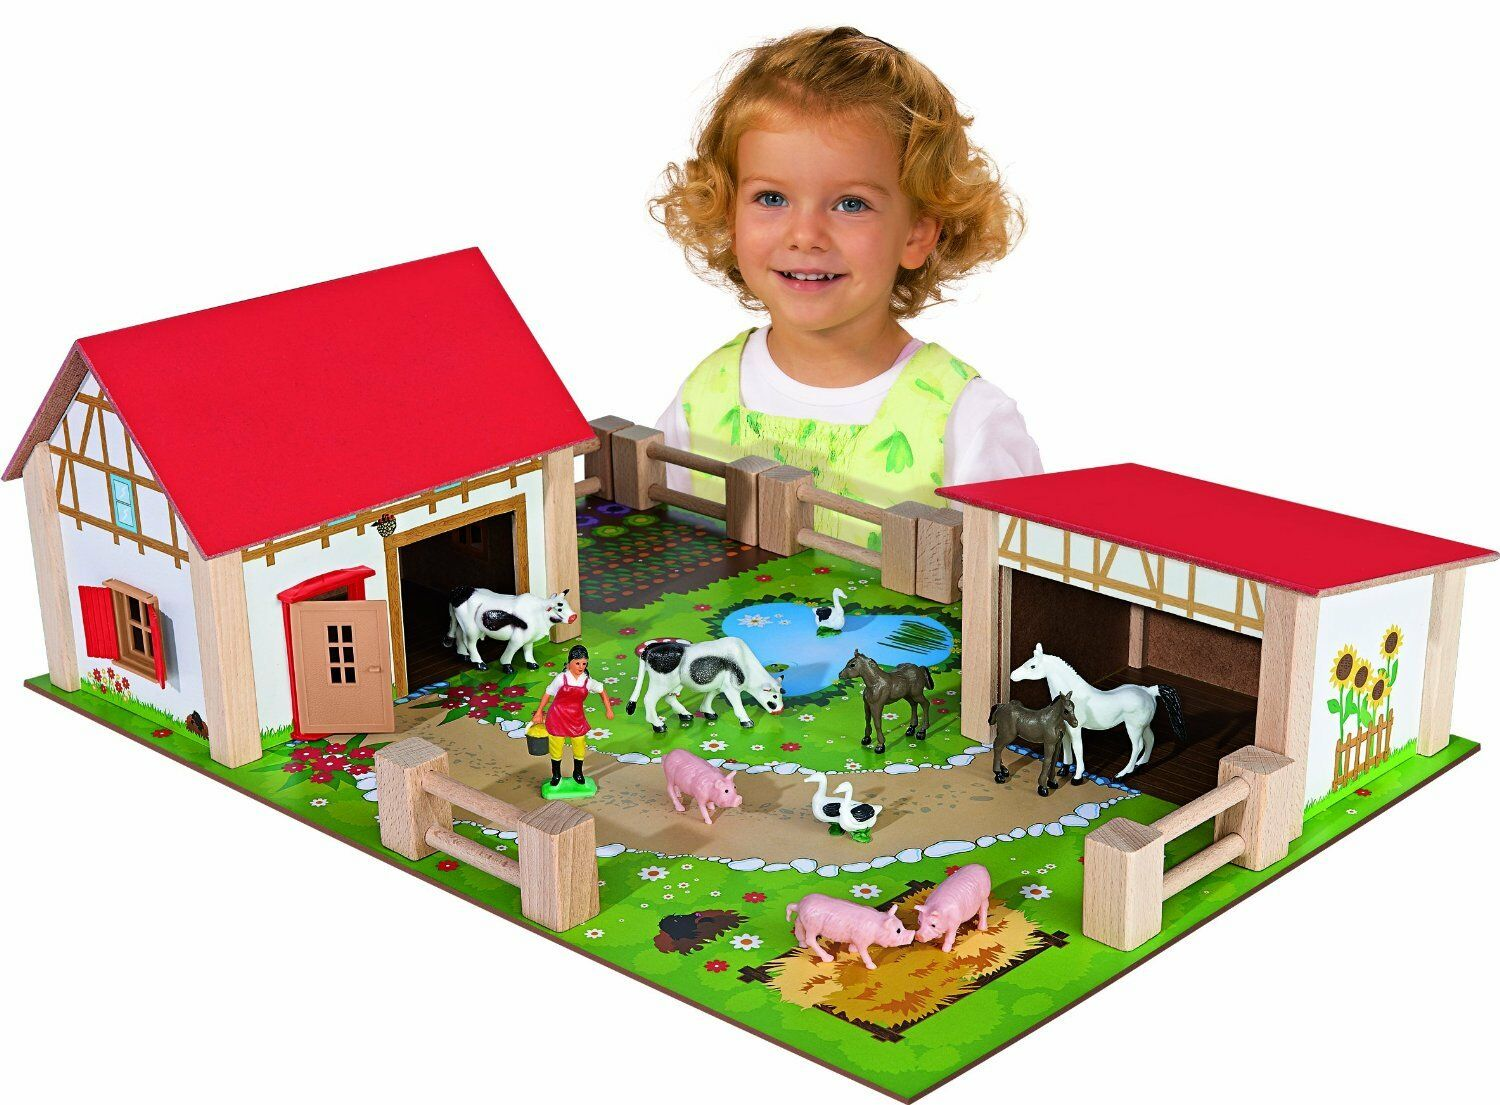 Toy Farm wood with Accessories 25 pieces Educational Educational Educational Fun Novelty d7252c